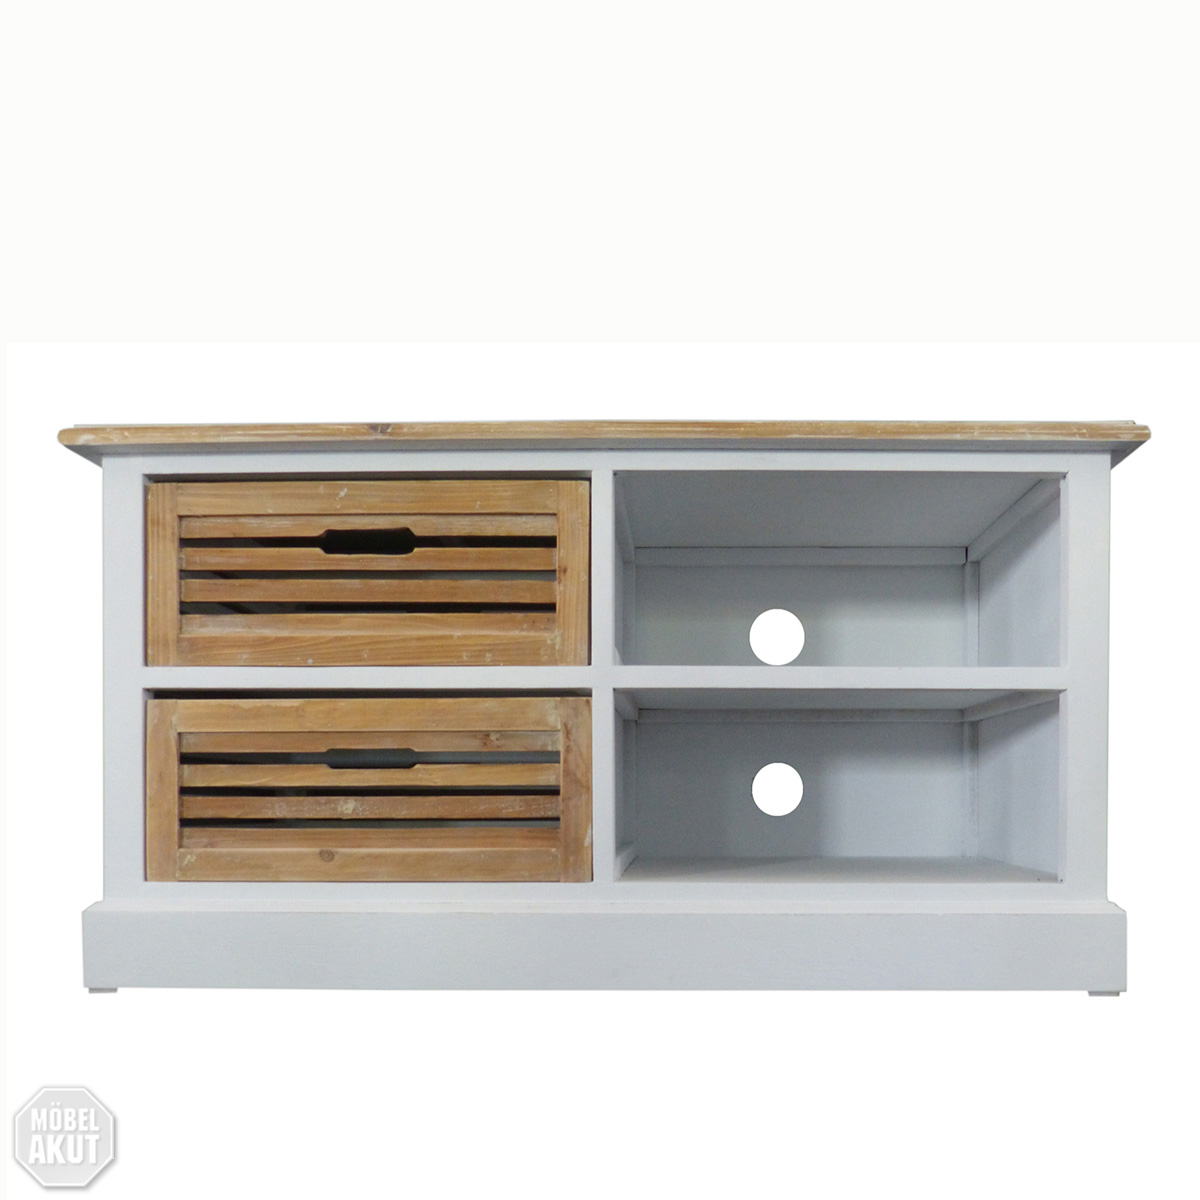 lowboard 1 paris tv board in paulownia holz weiss vintage look landhaus ebay. Black Bedroom Furniture Sets. Home Design Ideas